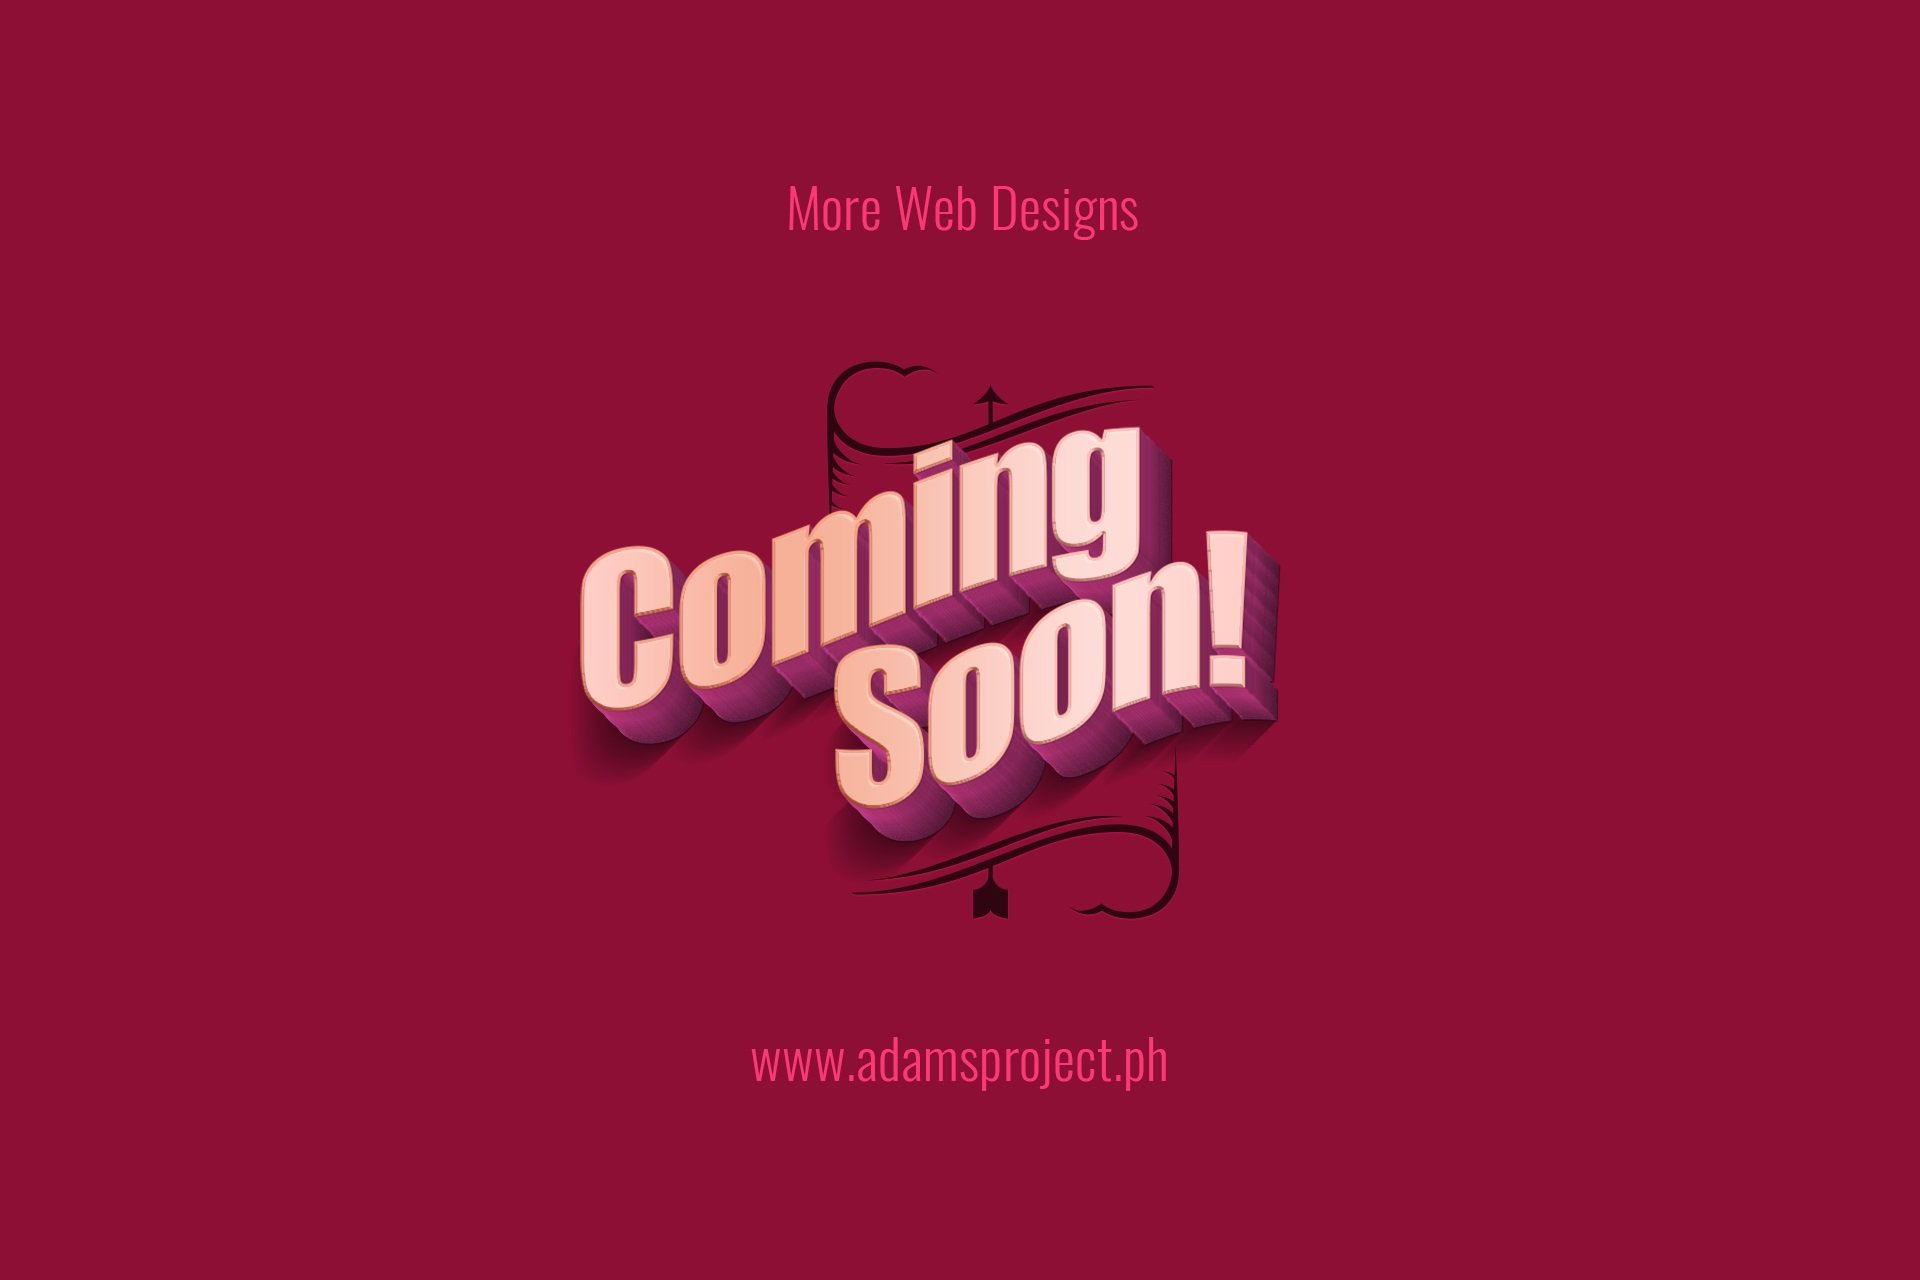 More Web Designs Coming Soon